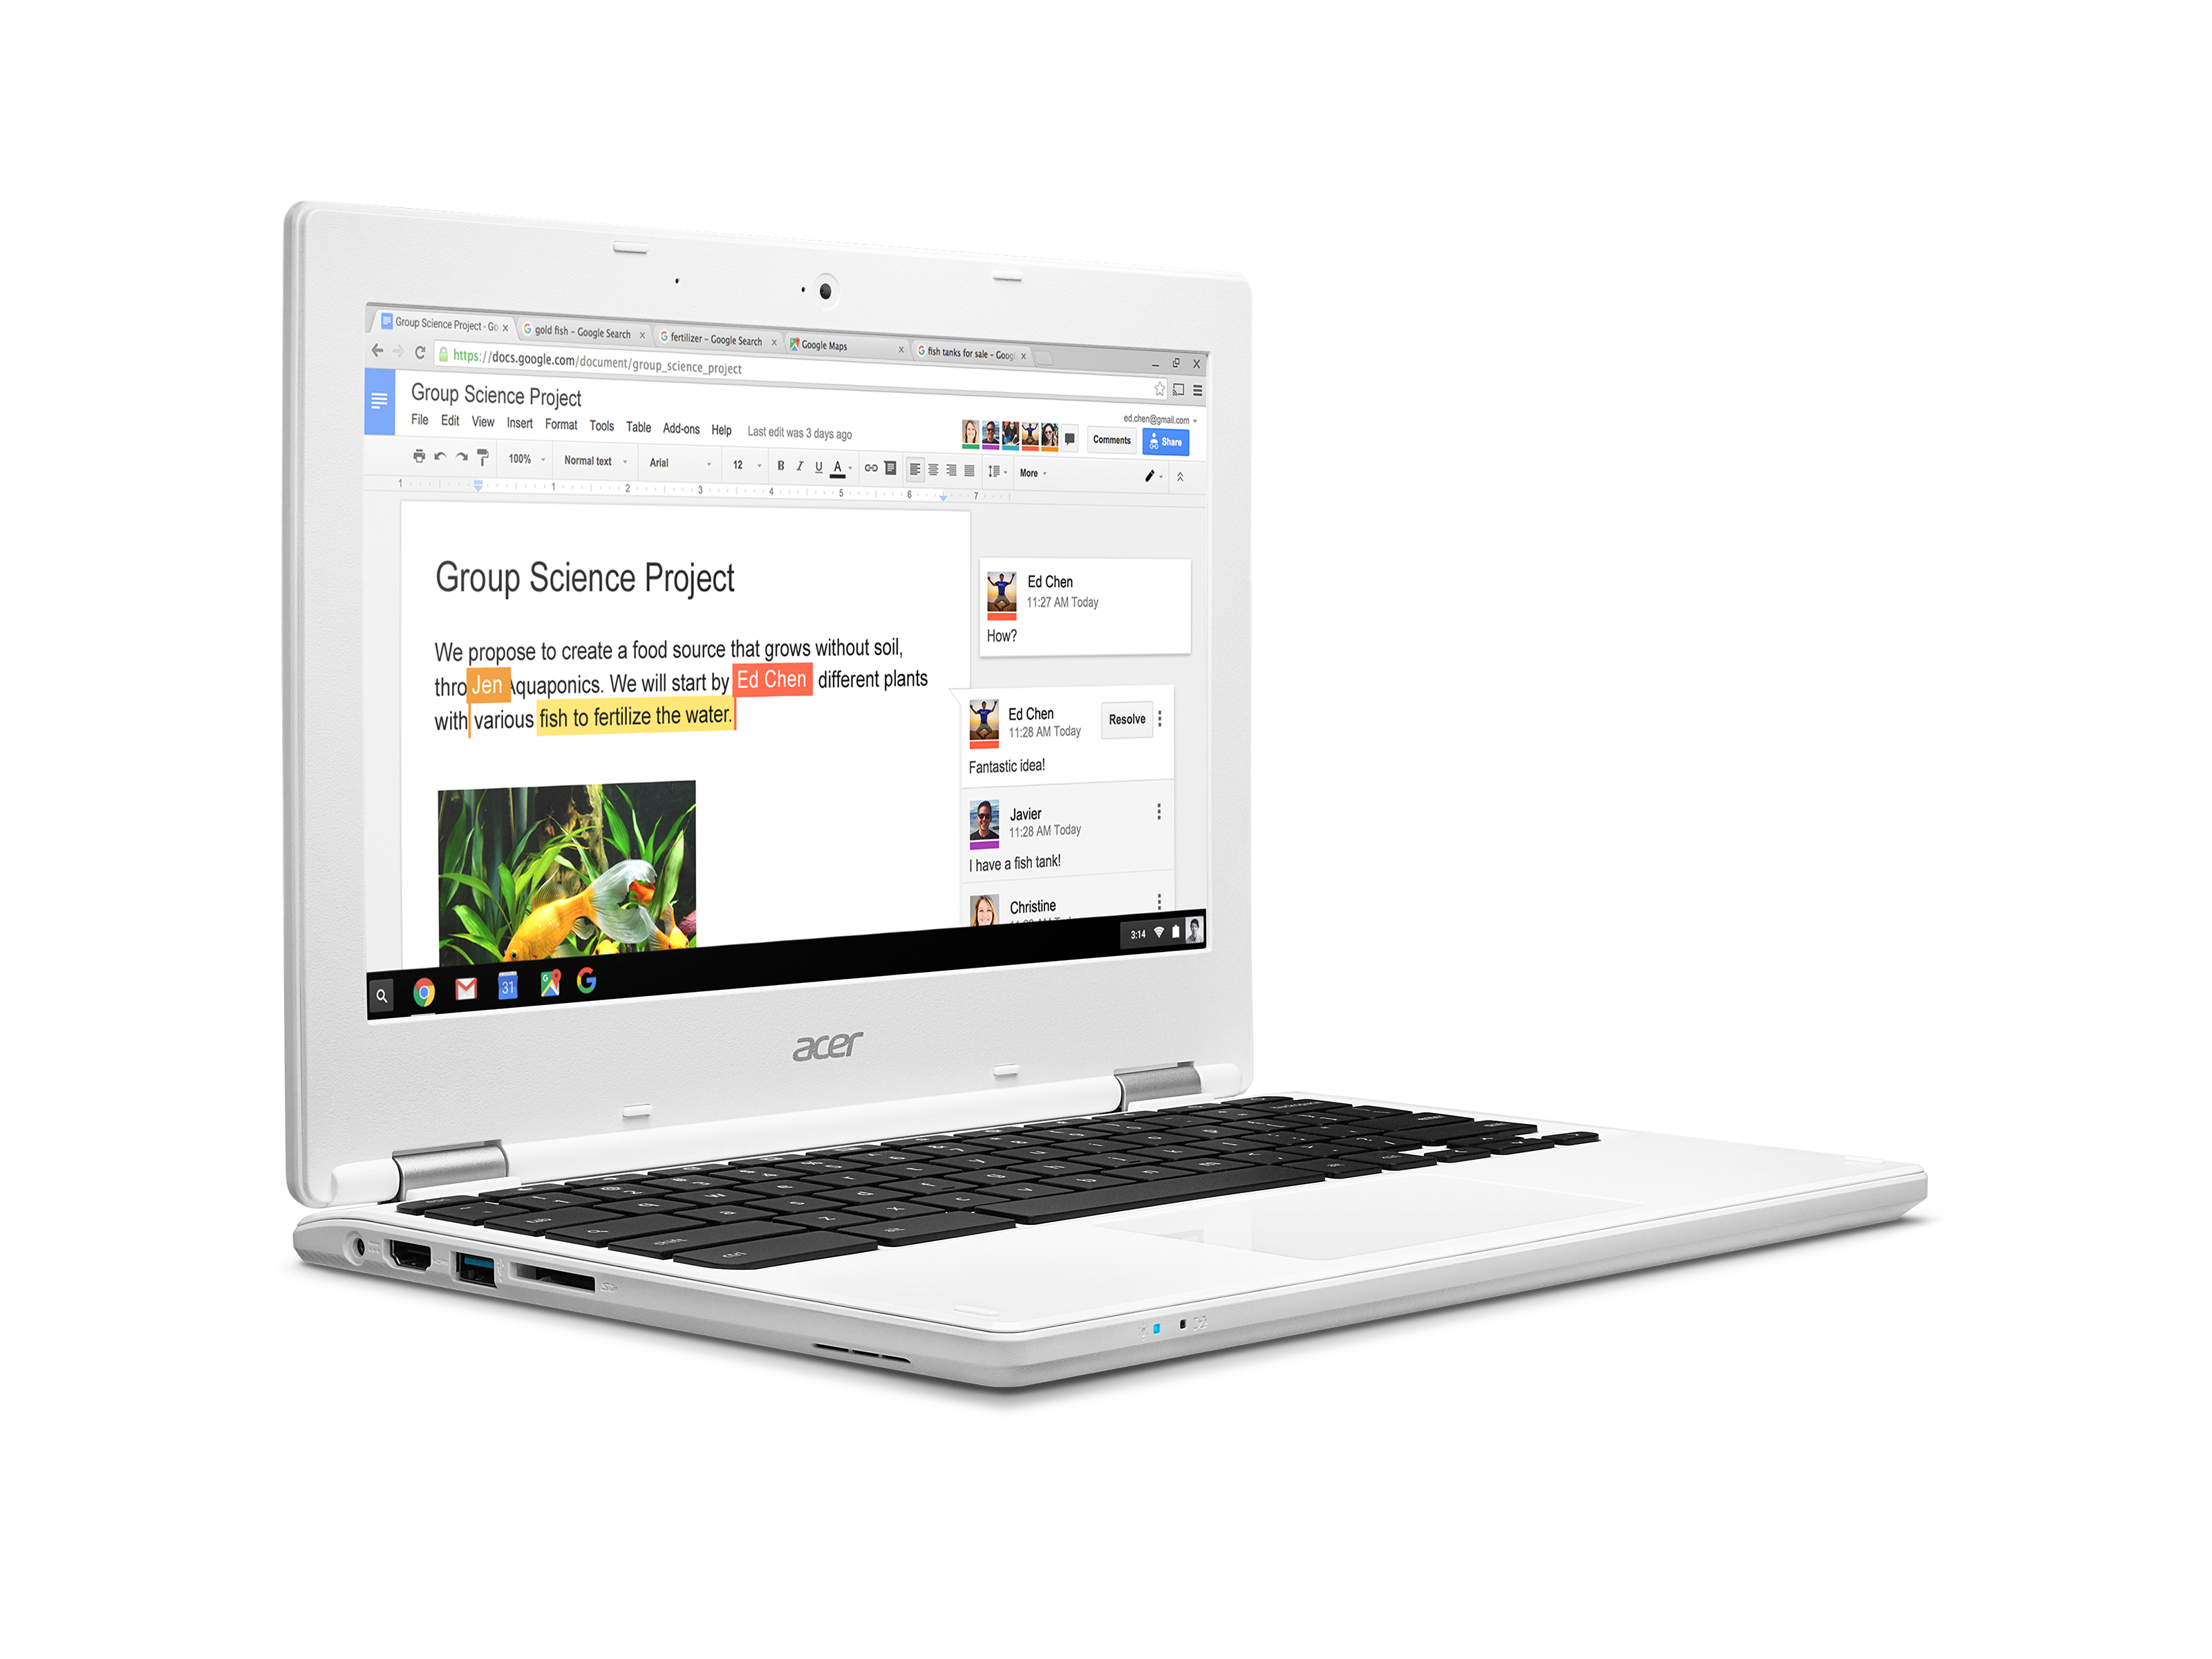 Google Store Starts Selling The Acer Chromebook 14 And Chromebook 11 2016